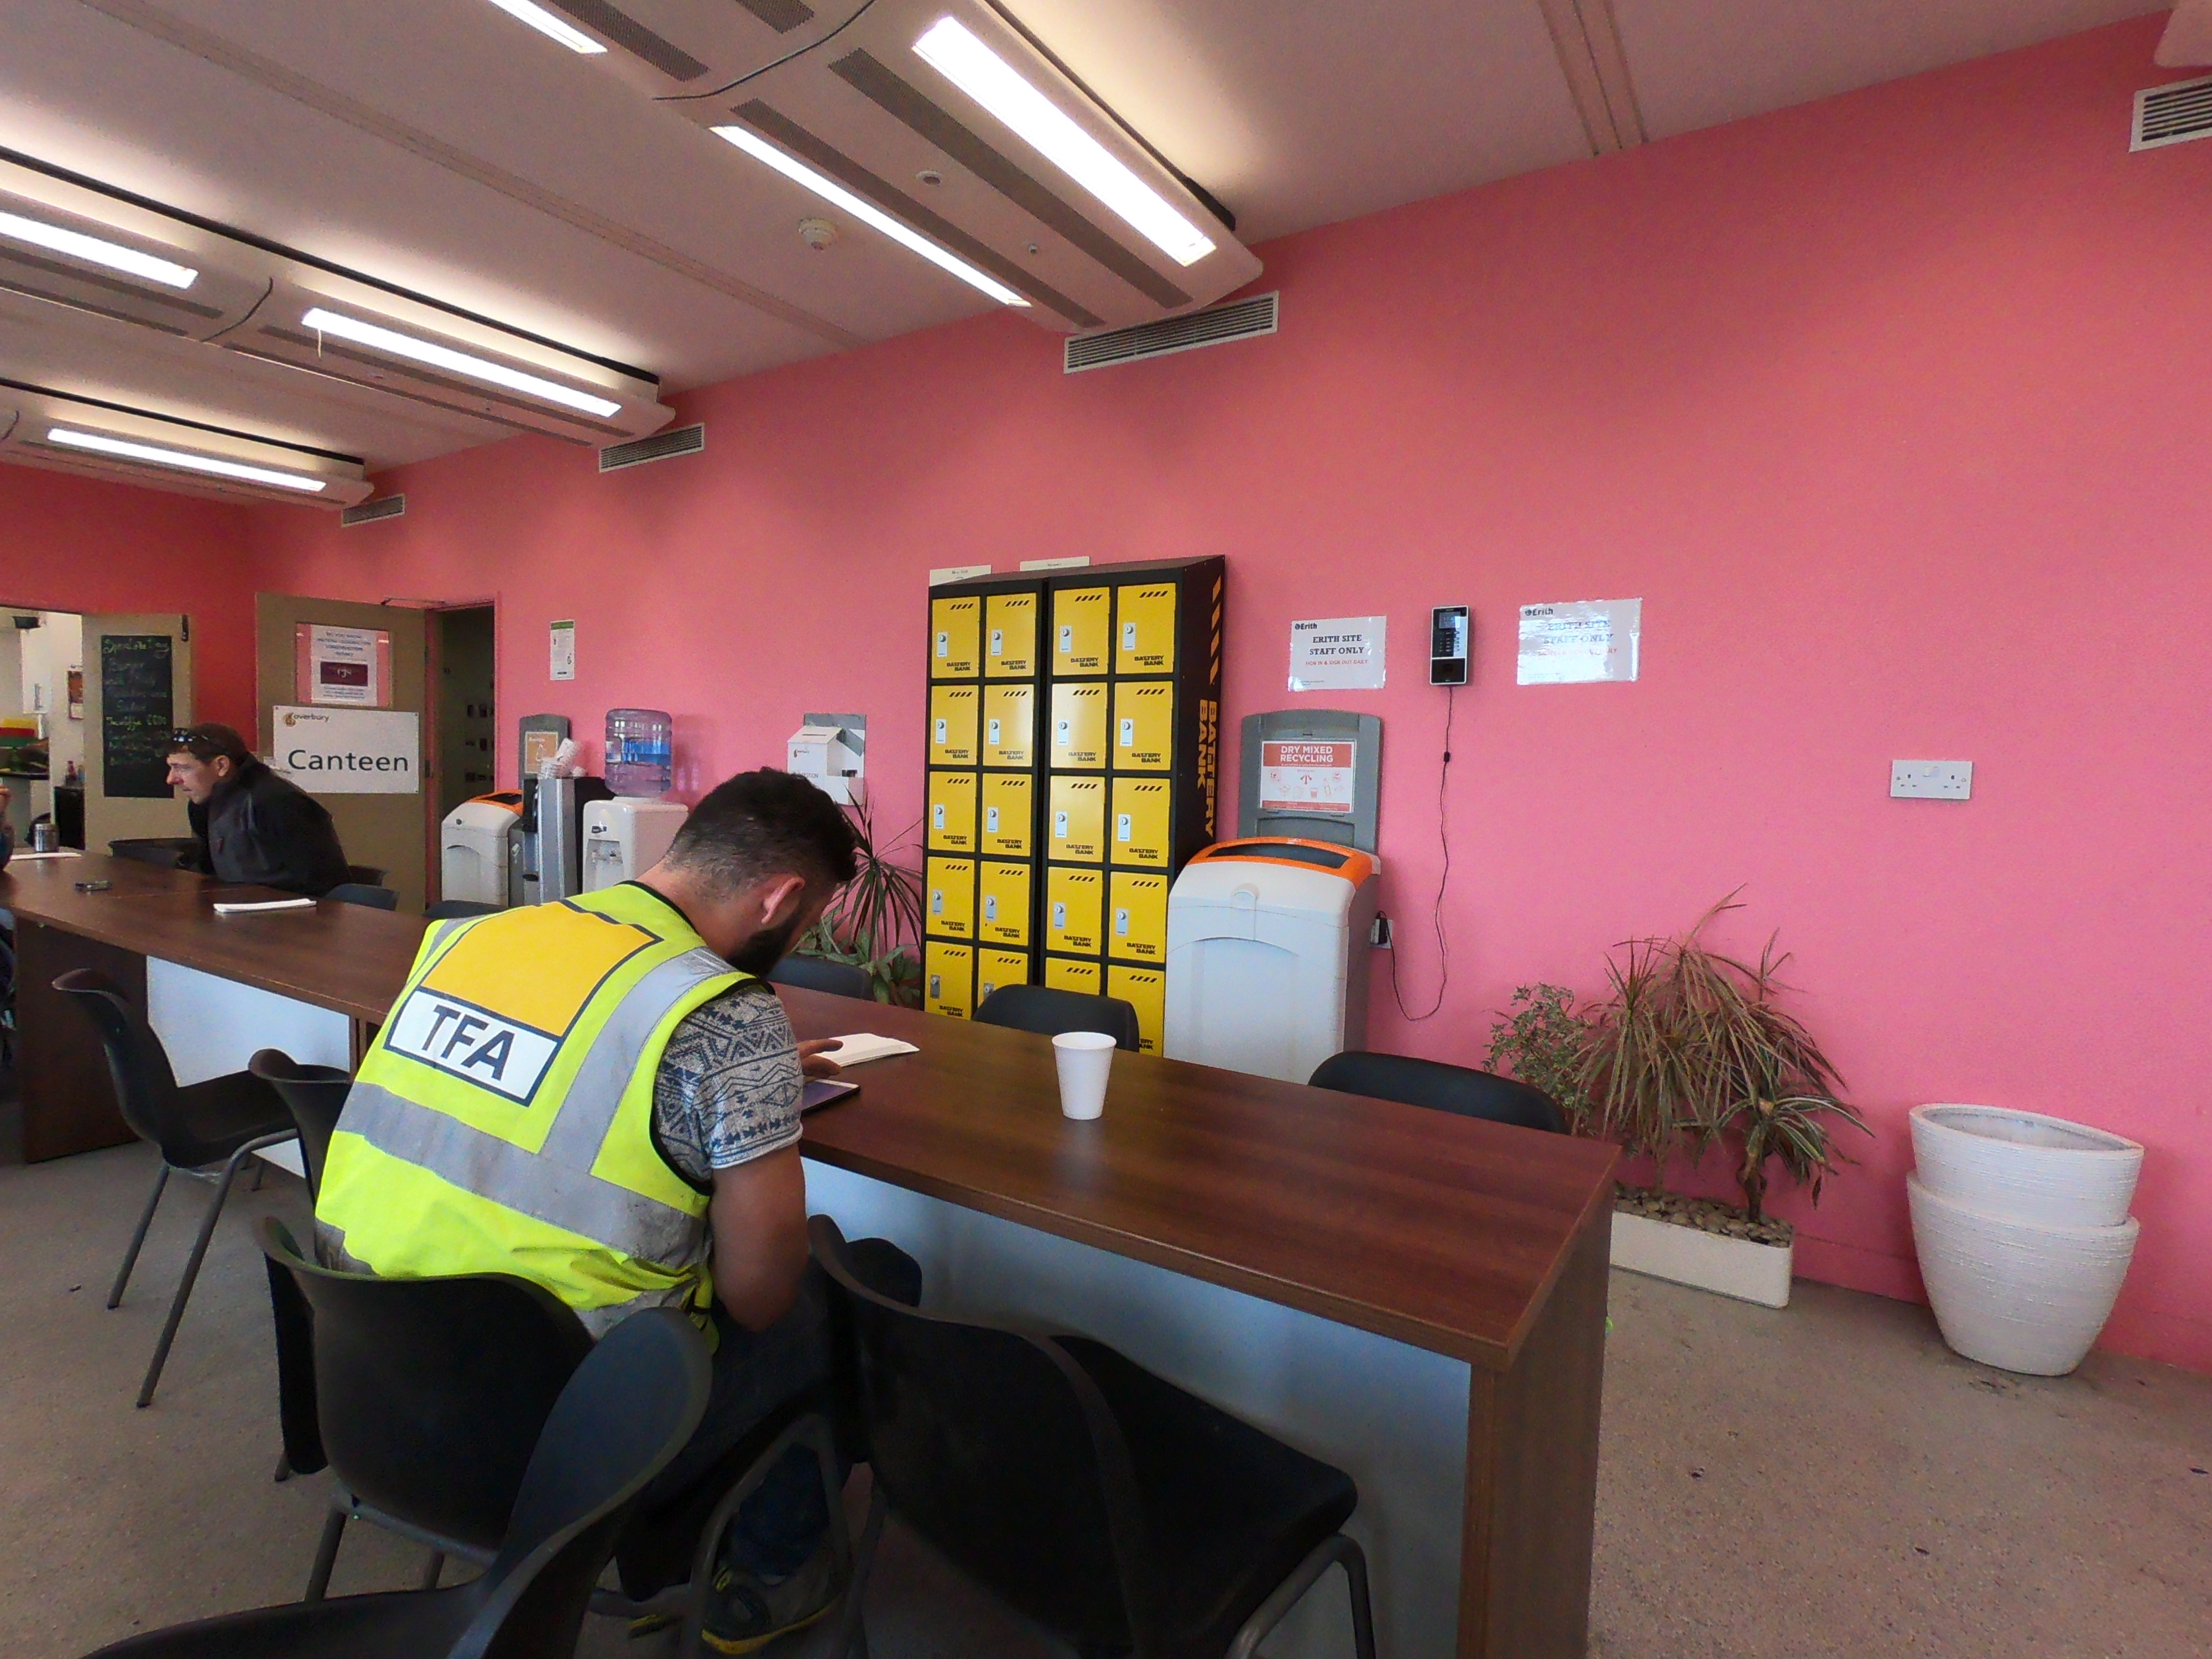 preventing falls pink walls overbury cool canteen pink